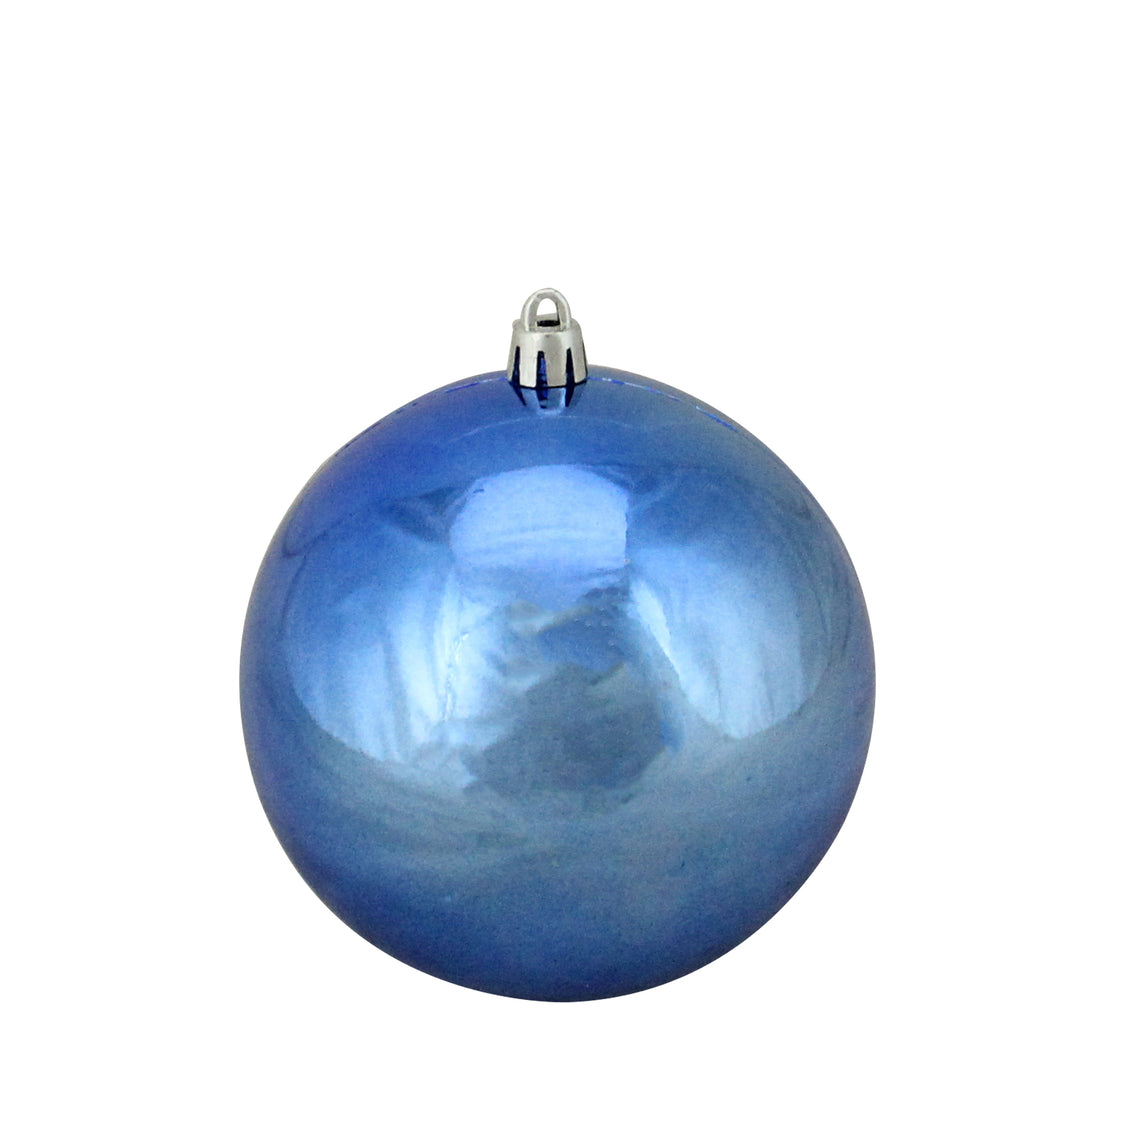 Northlight Lj34725-Lavish Blue Shatterproof Shiny Christmas Ball Ornament 4